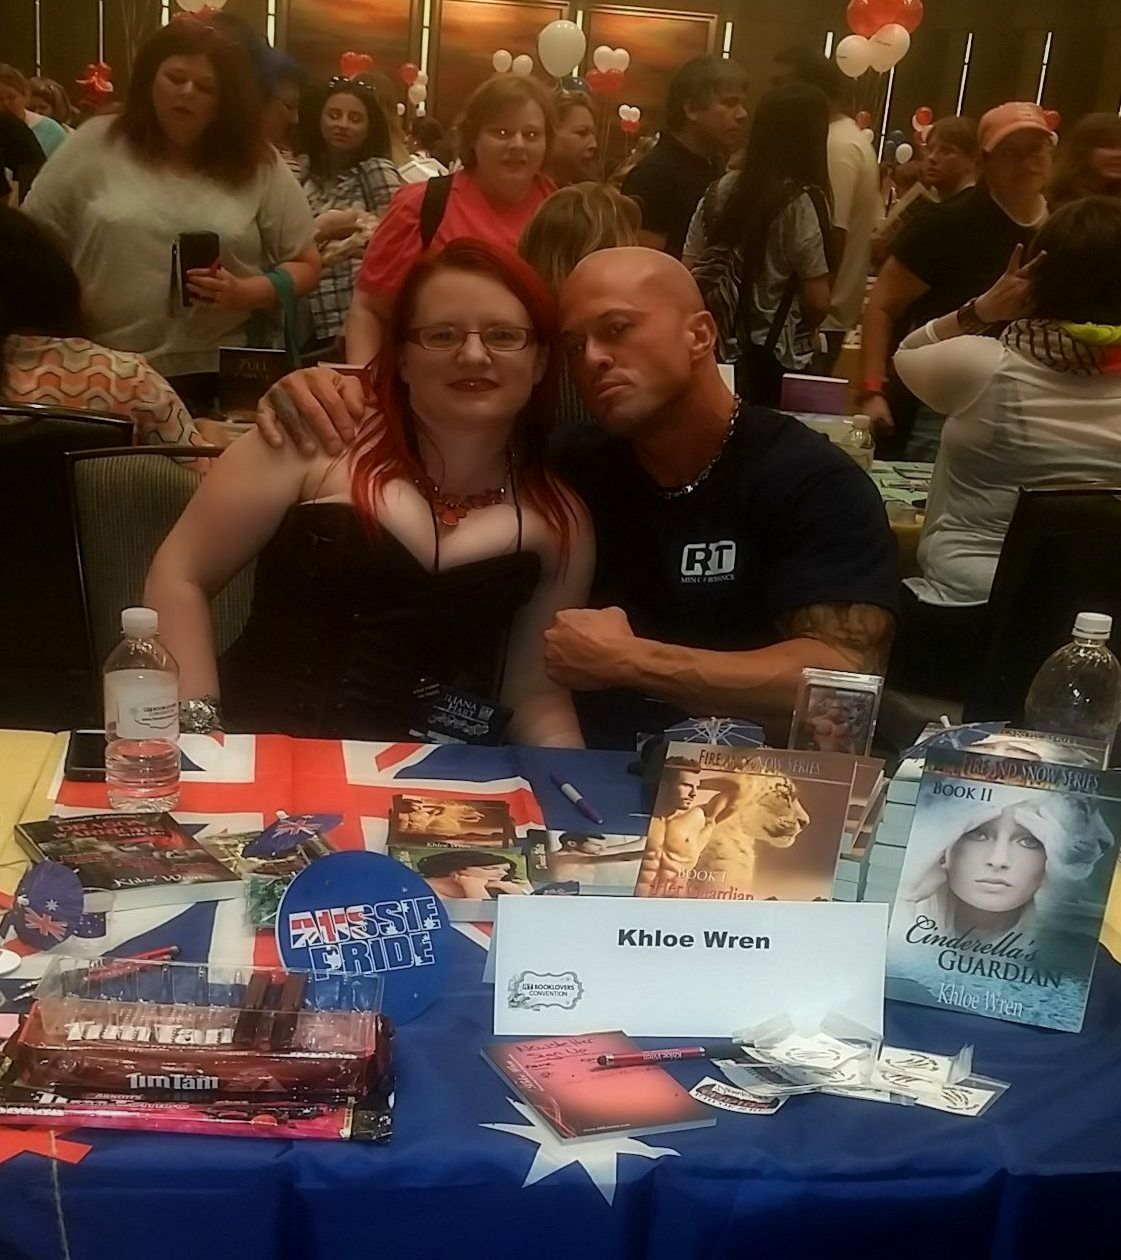 Author Khloe Wren & Featured Cover Model John Joseph Quinlan Autograph Signing @ 2015 RT World Famous Book Fair #JohnQuinlan